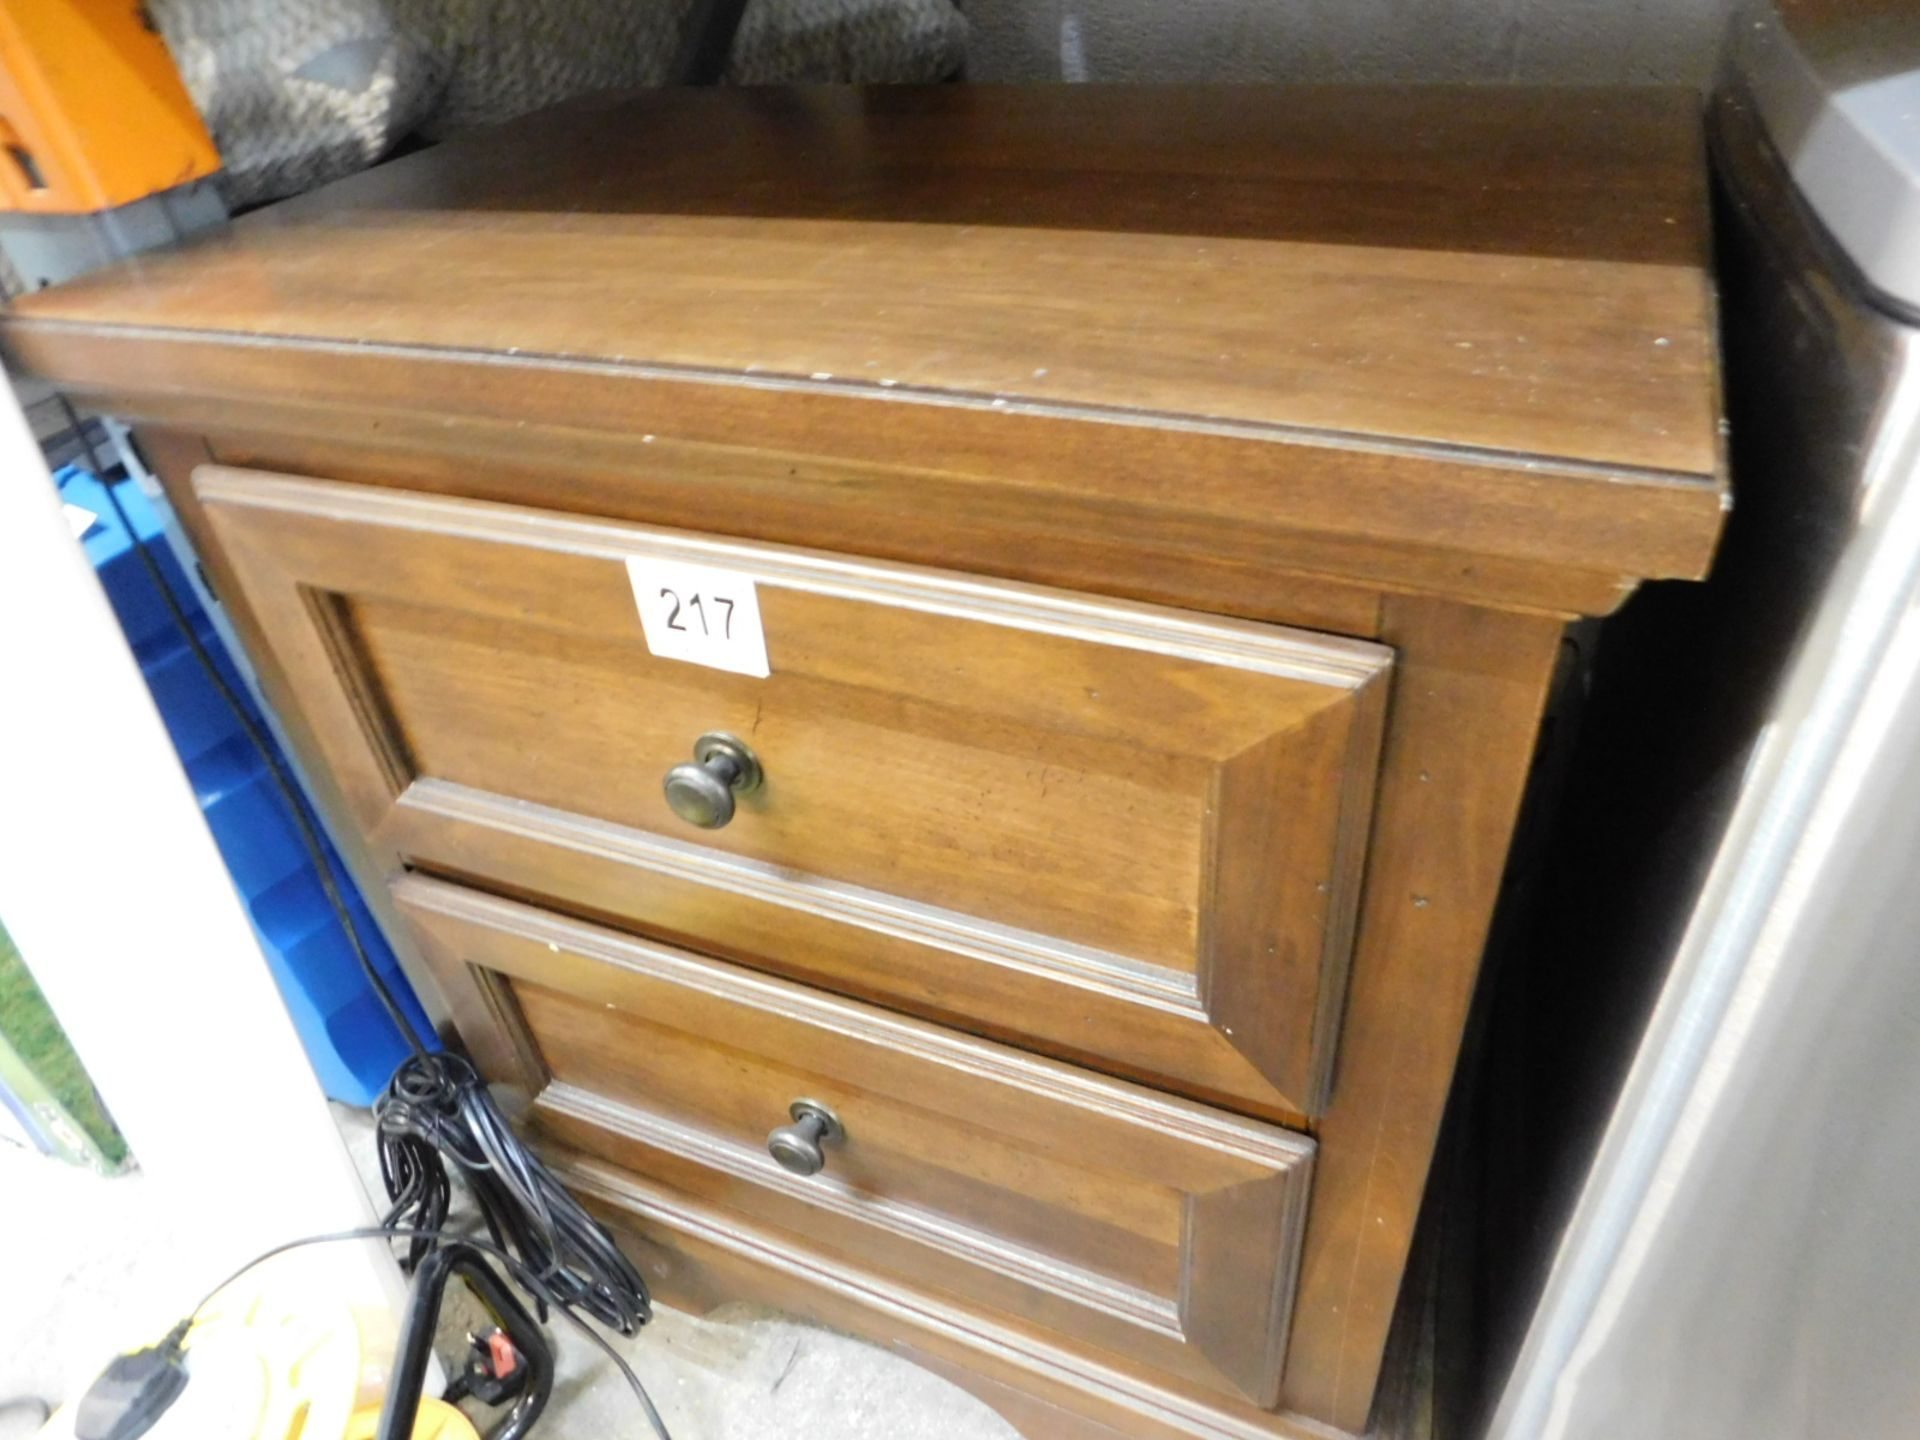 Lot 217 - 1 UNIVERSAL BROADMOORE NIGHTSTAND WITH 2 STORAGE DRAWERS RRP £119.99